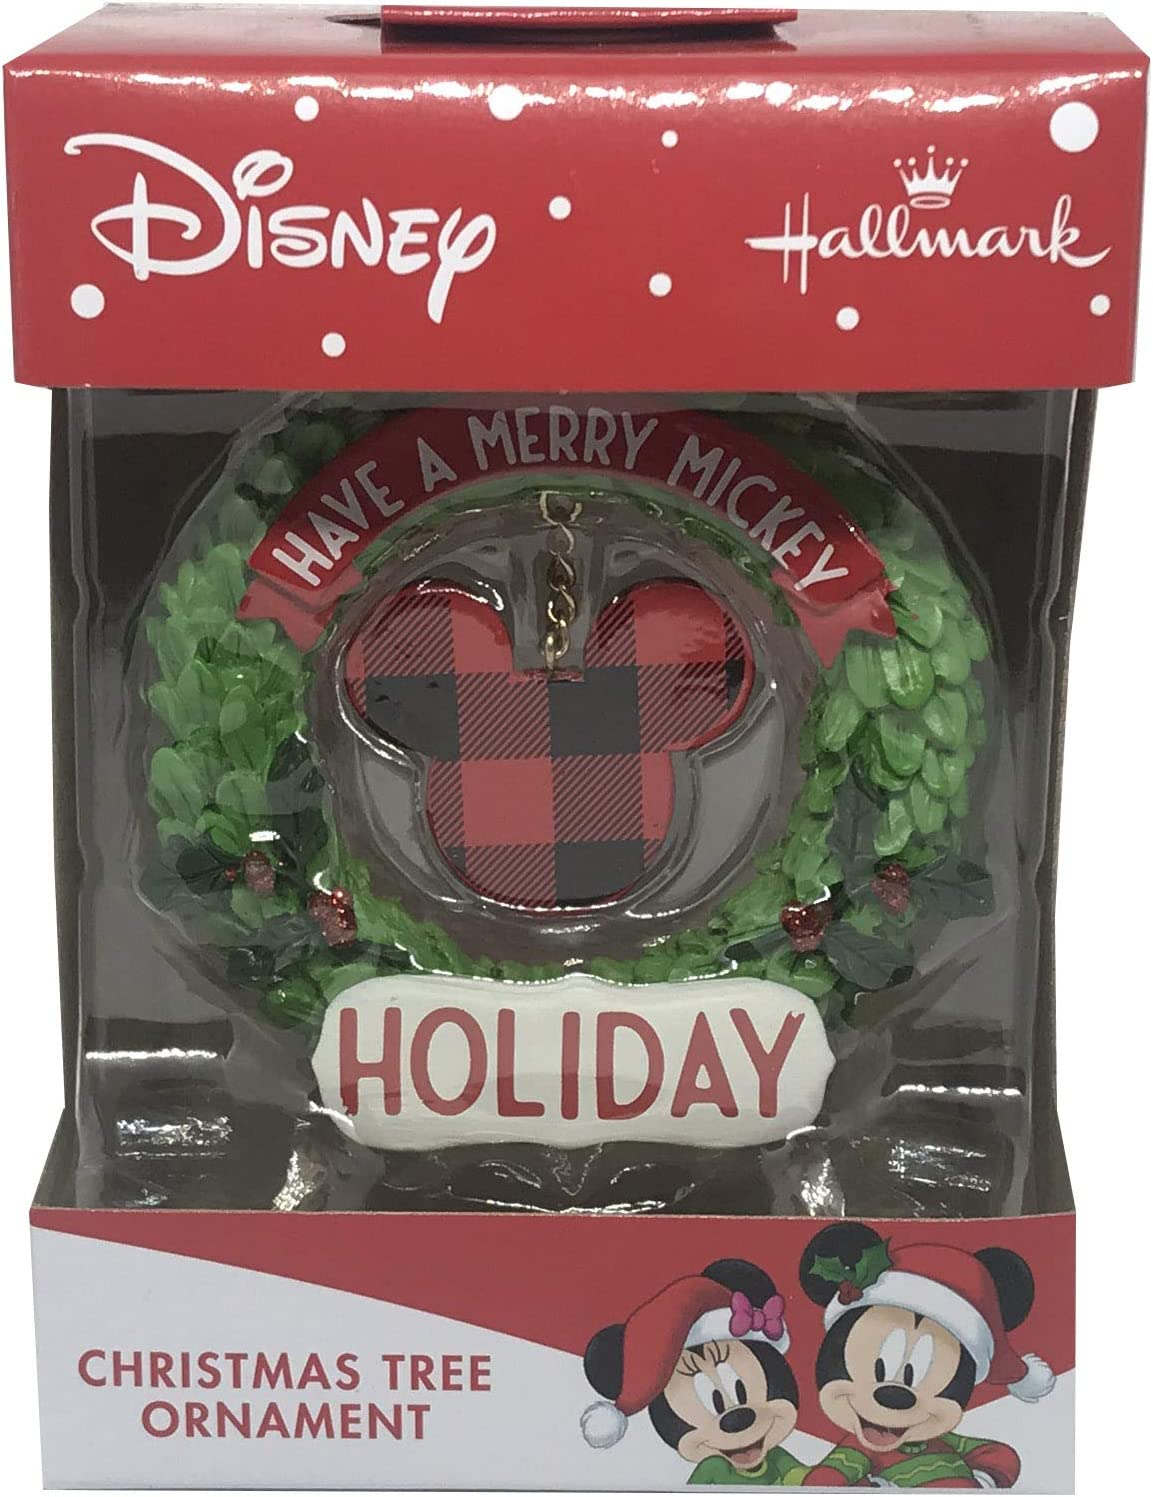 Disney Mickey Mouse Hallmark Christmas Ornament - 2019 Have a Merry Mickey Holiday Buffalo Plaid Wreath